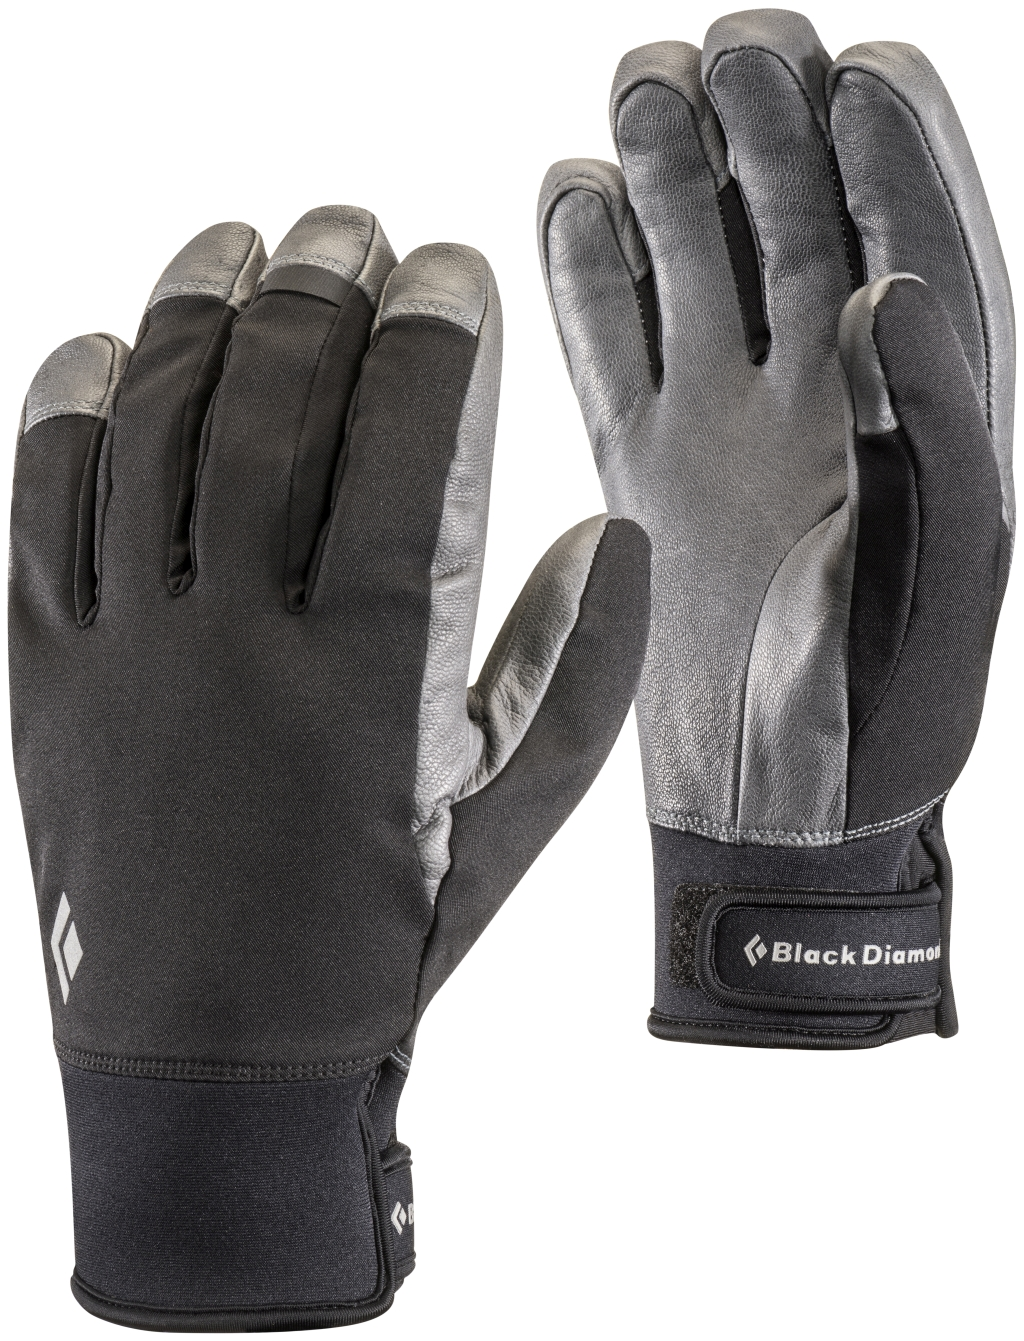 Black Diamond Impulse Gloves Black-30